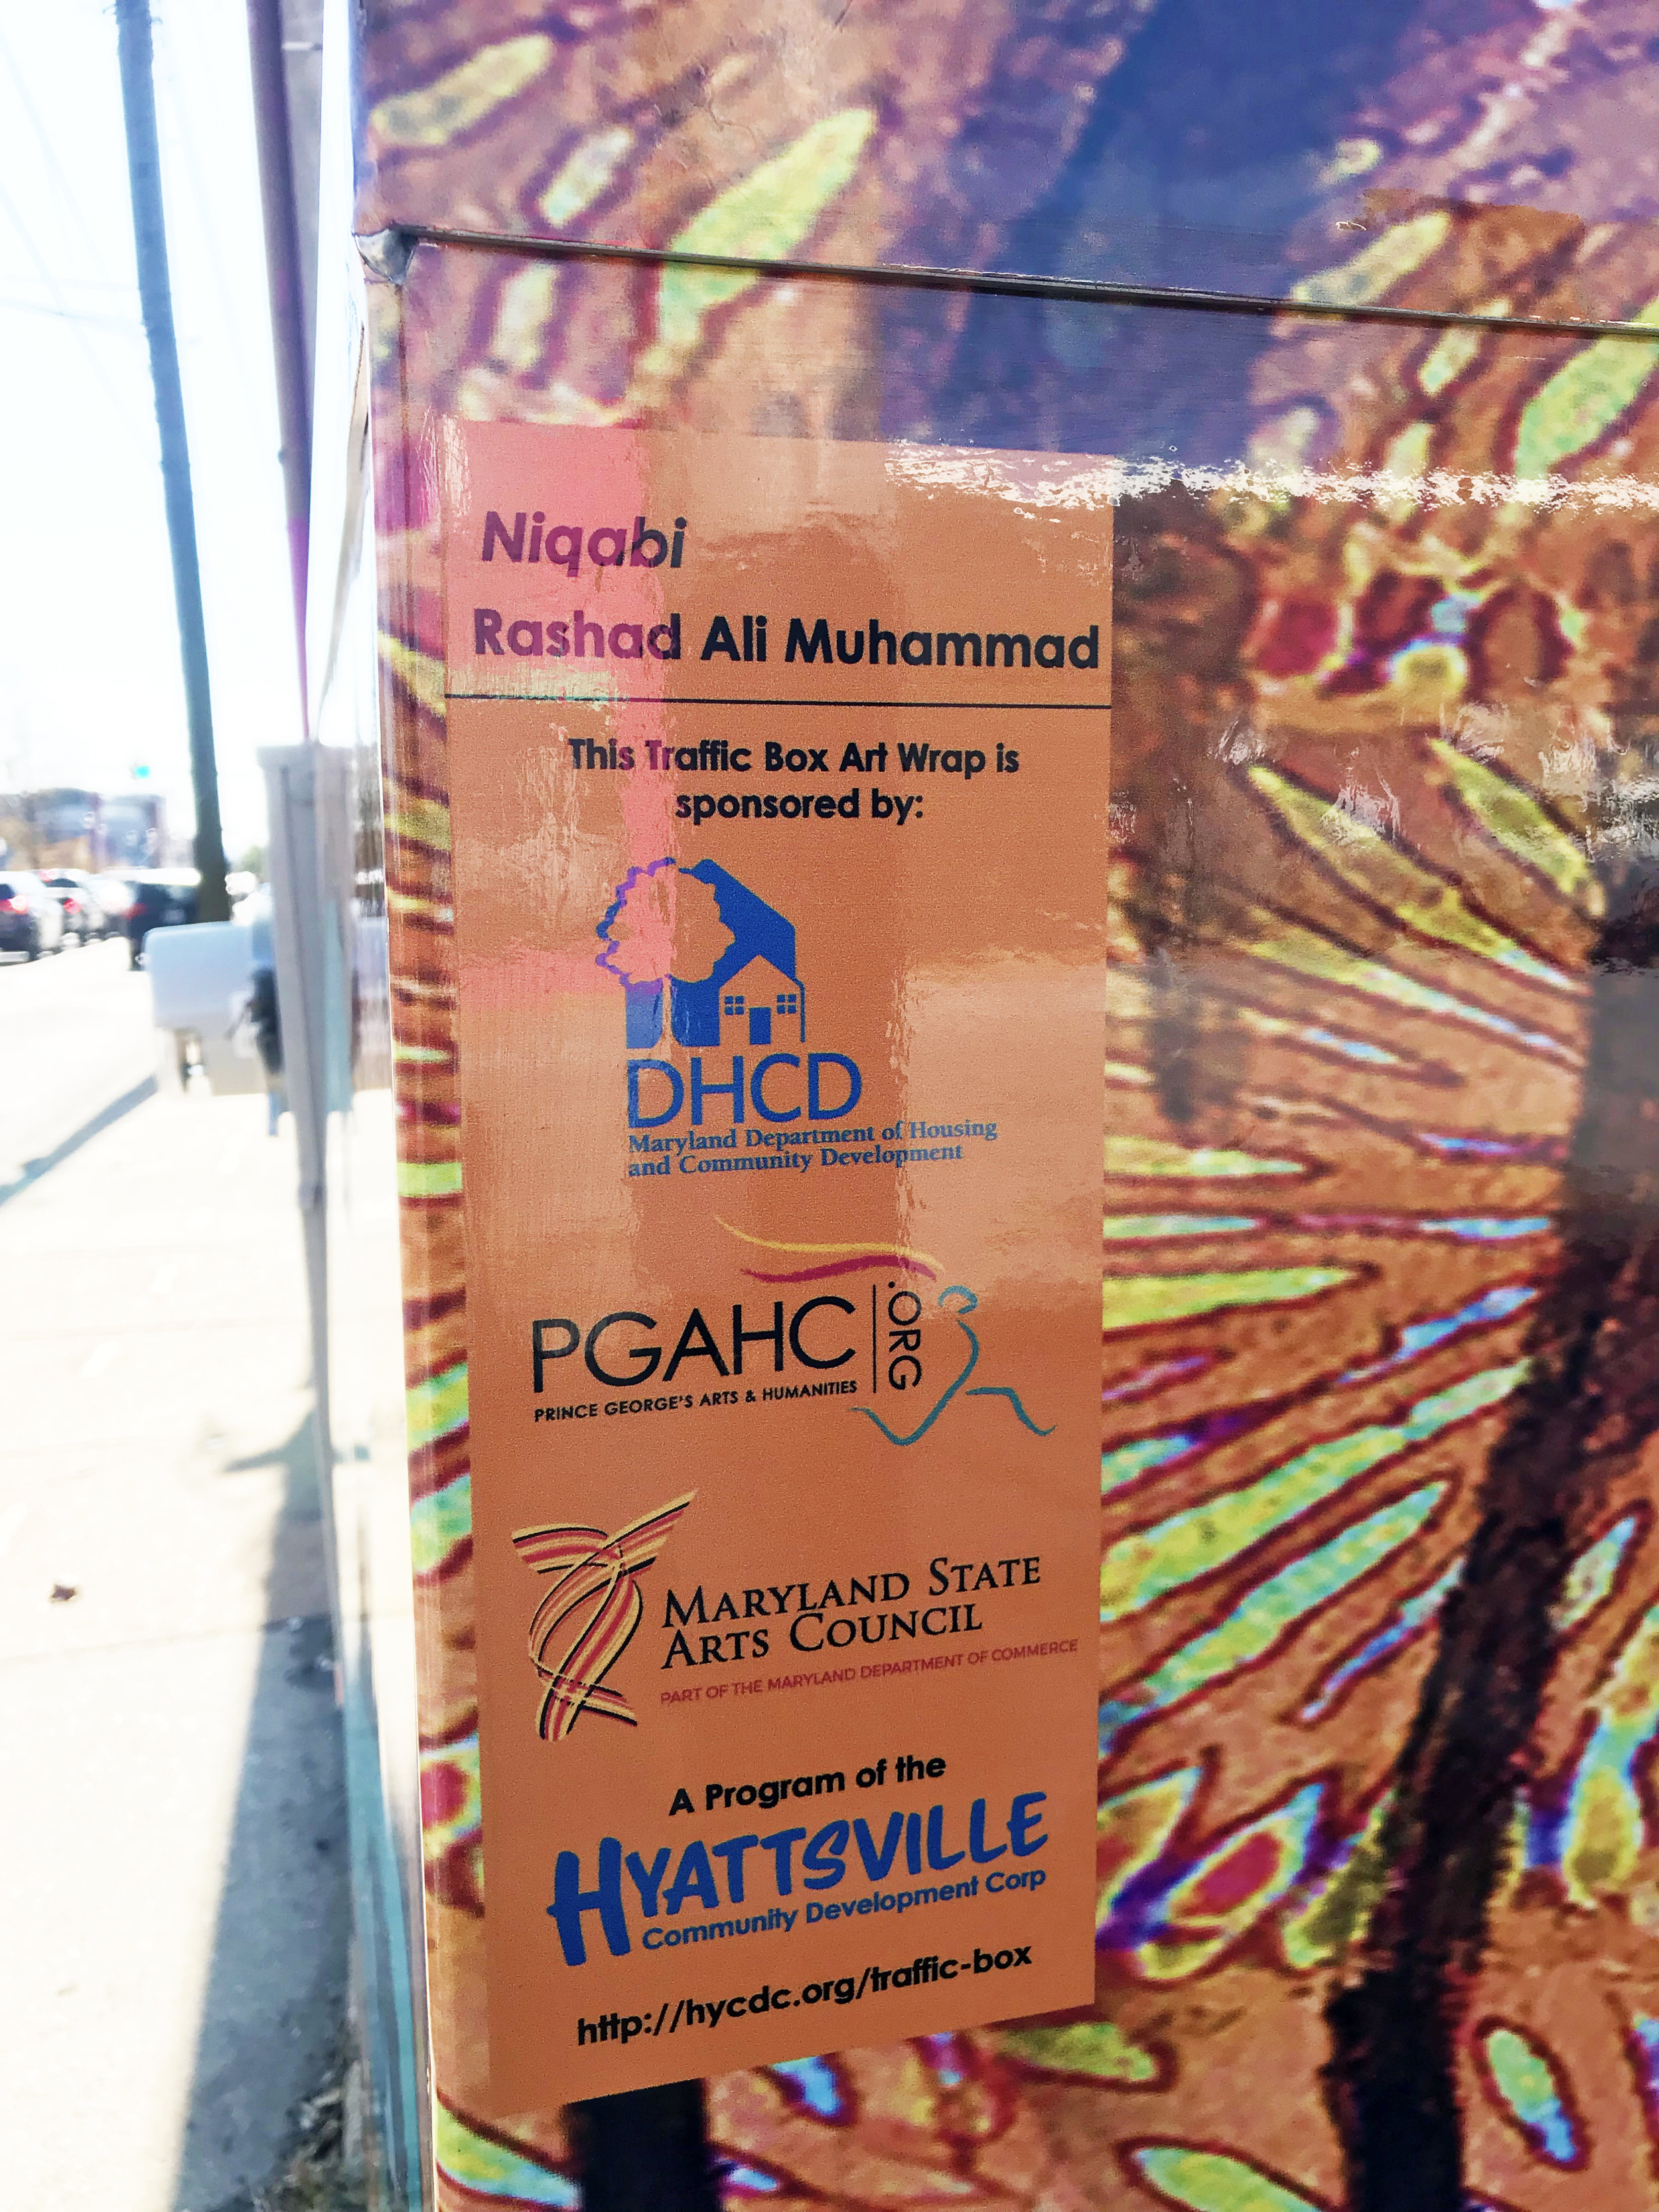 rashad ali muhammad traffic box art wrap